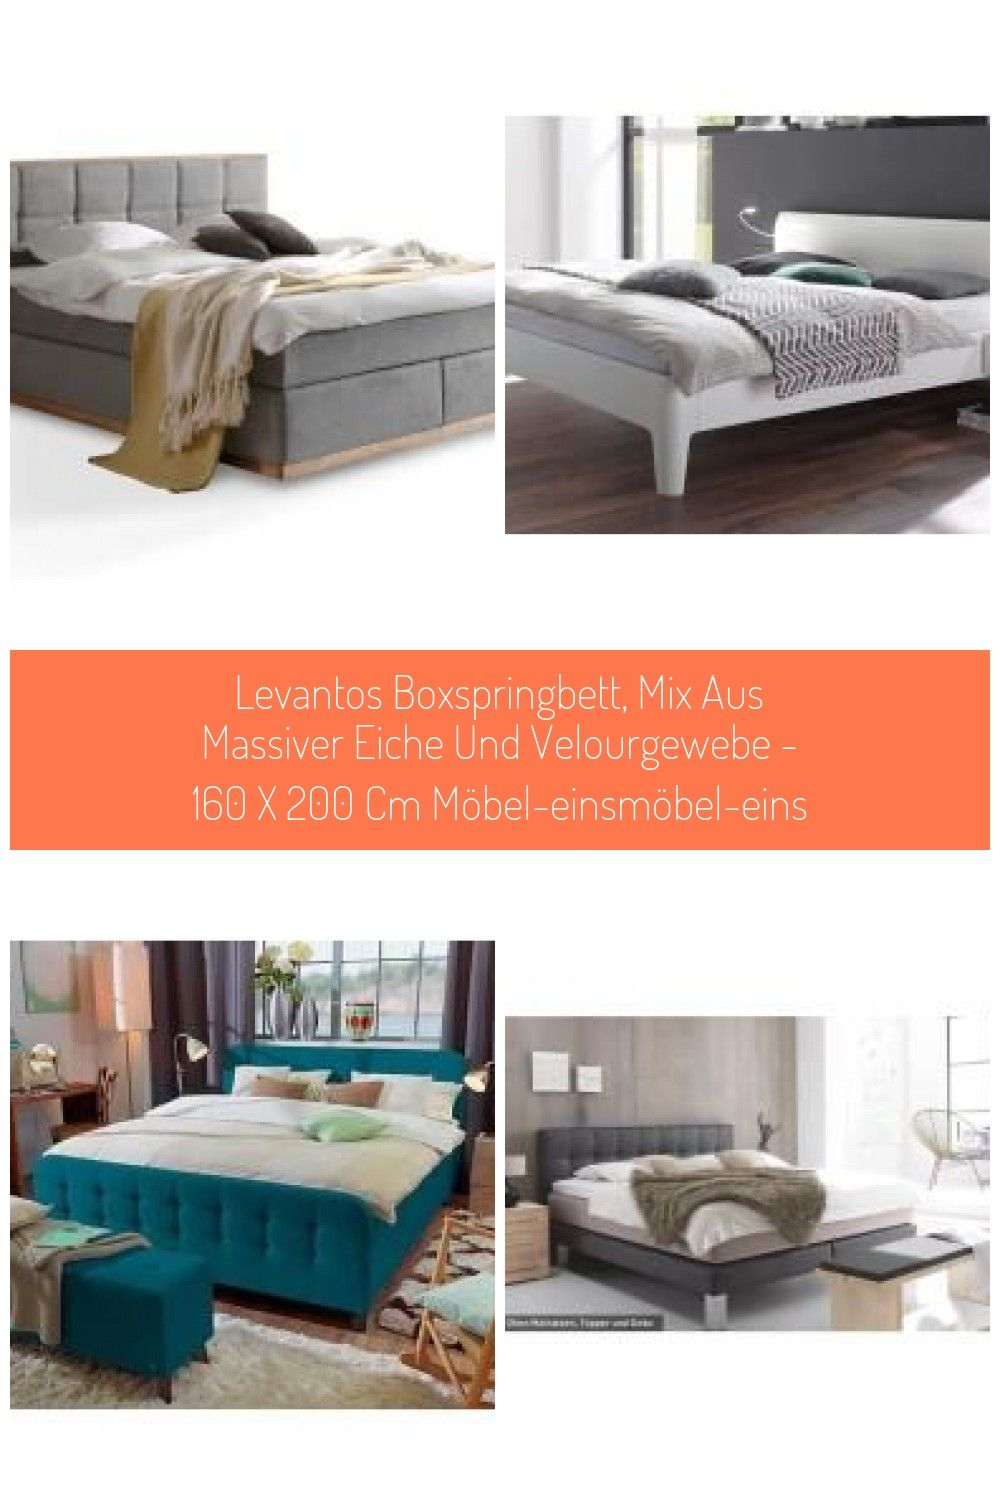 Pedestal Height 5cm Box Height 25cm Ground Clearance 5cm Headboard Depth 14cm Mattress Height 20cm Seat Height 55cm Length 213cm Height 112cm Length Lying Surfa In 2020